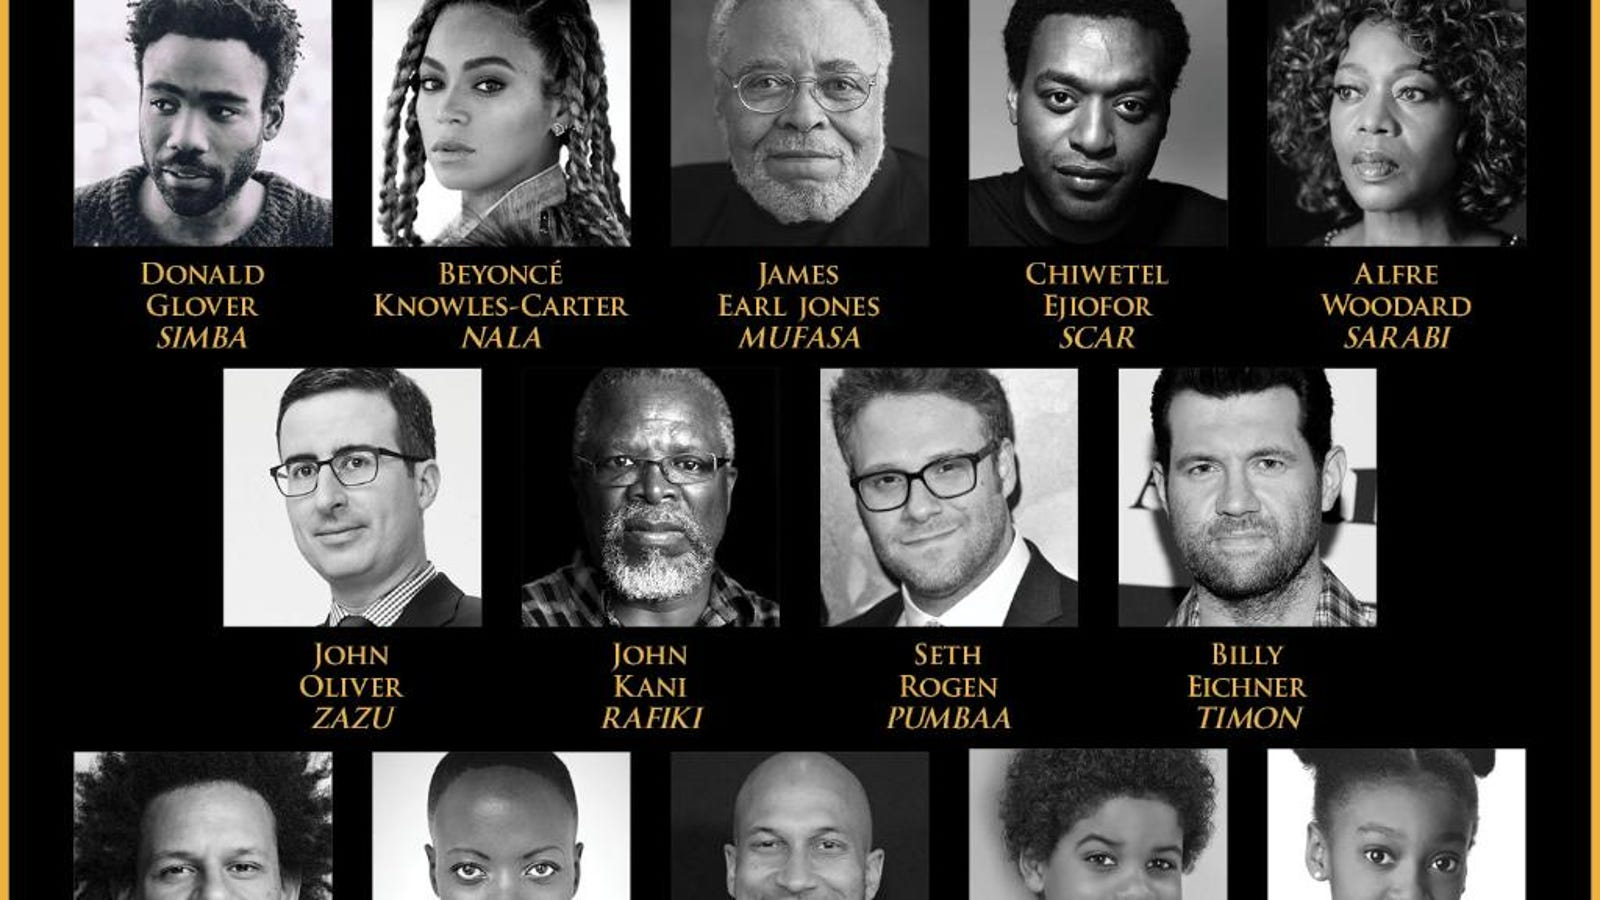 the blackest disney movie ever  the lion king  will have the blackest cast ever u2014including queen bey